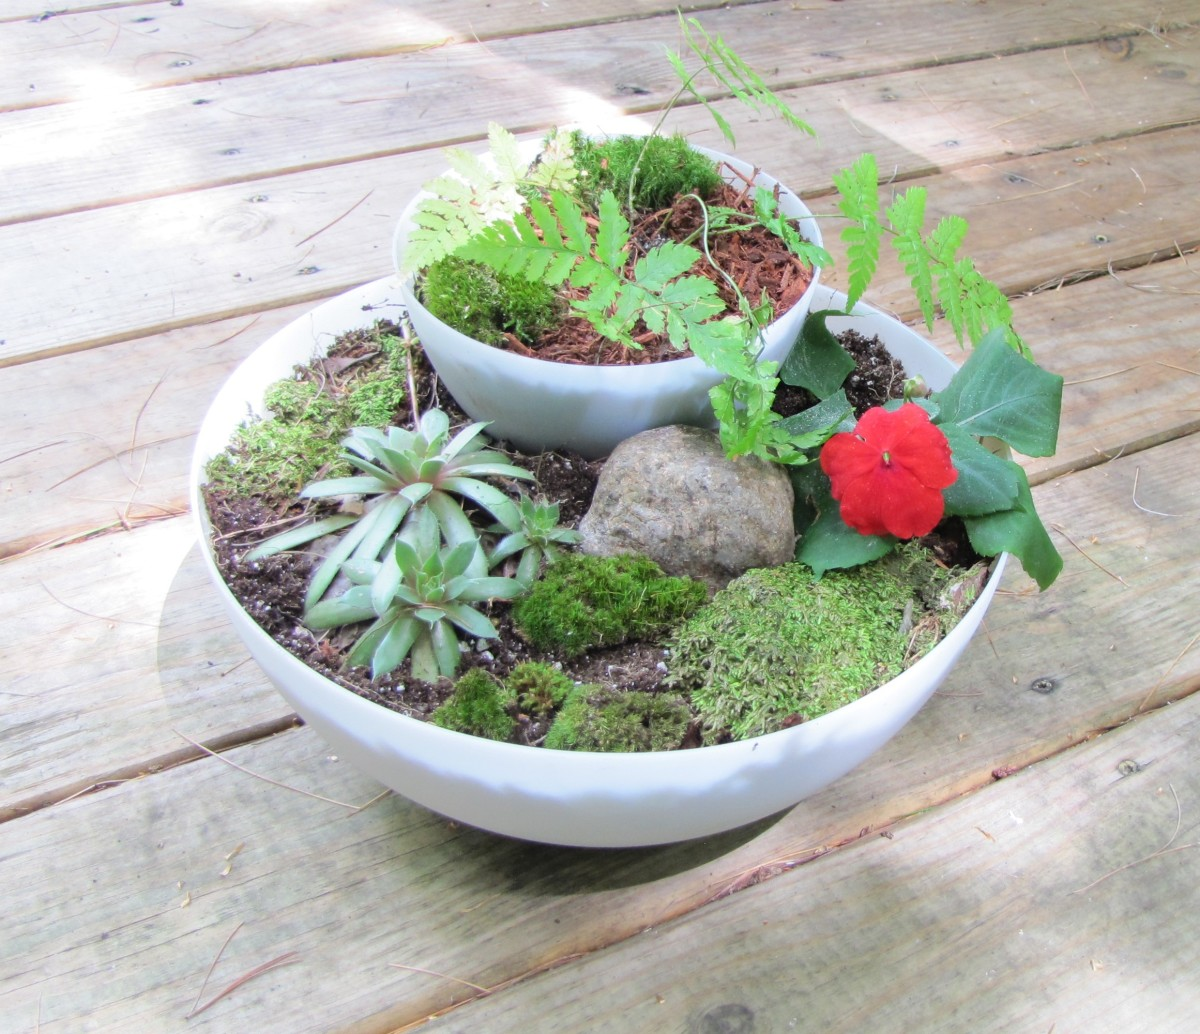 Here's the finished fairy garden. I added a stone, some hen-and-chicks and some moss to the lower section.